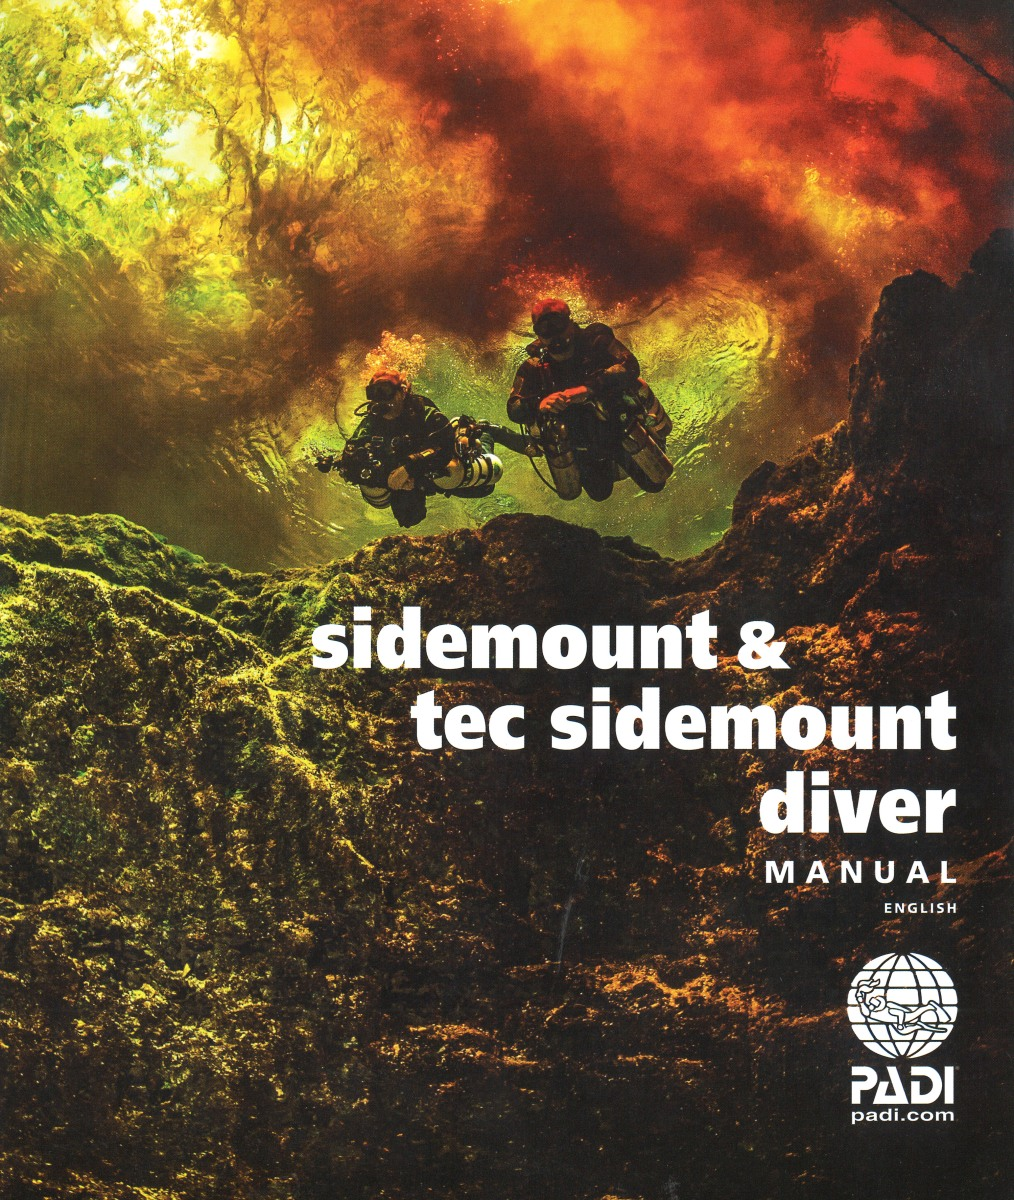 Sidemount - What, why and how?